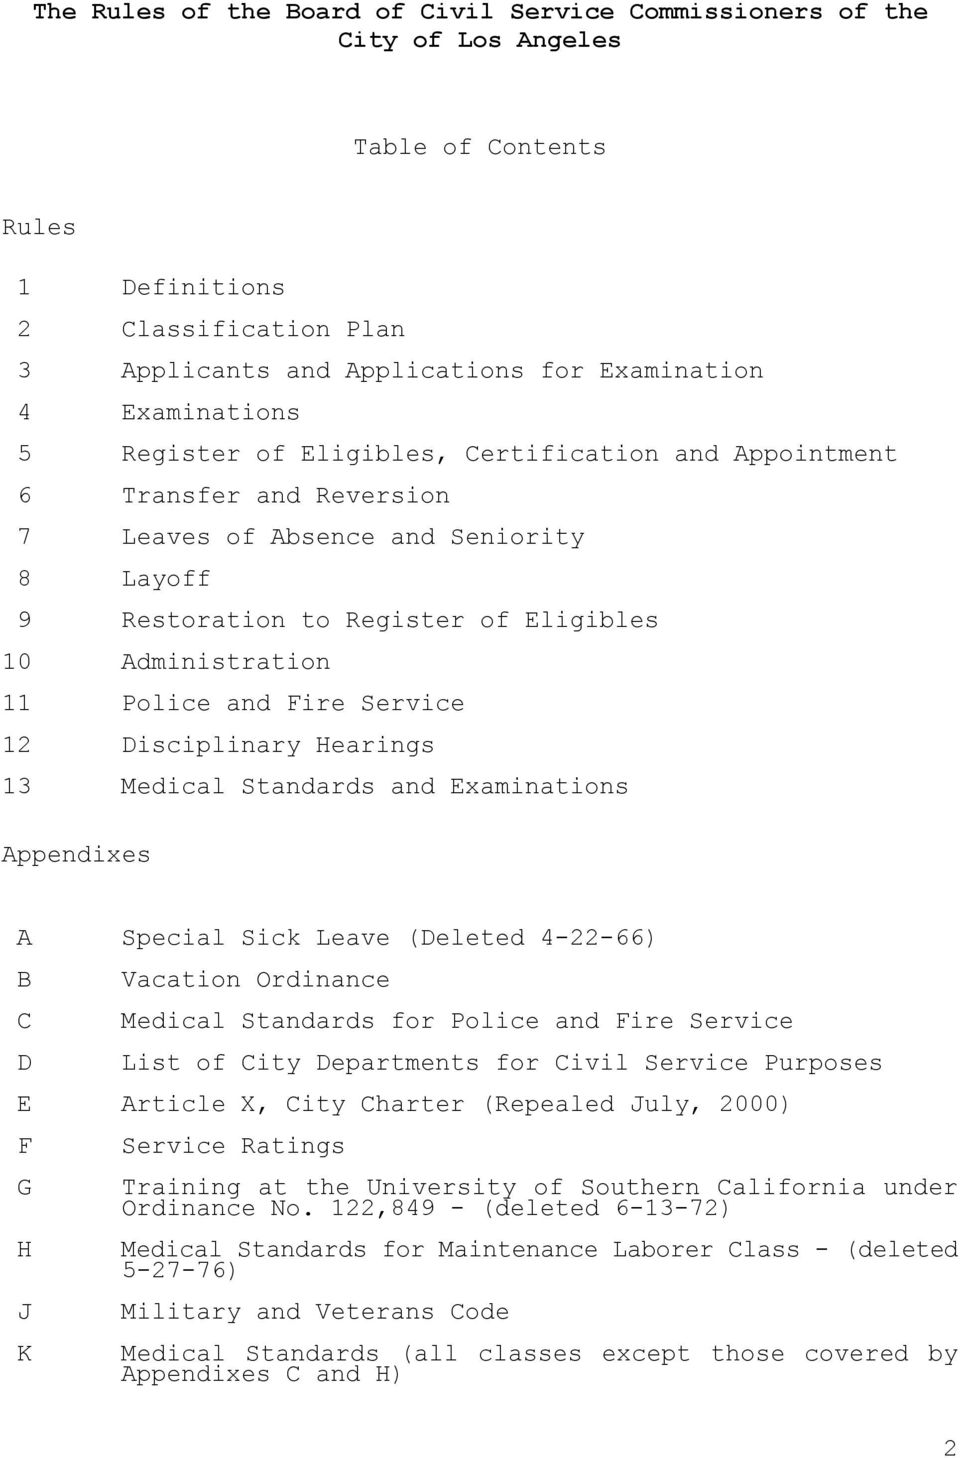 Police and Fire Service 12 Disciplinary Hearings 13 Medical Standards and Examinations Appendixes A Special Sick Leave (Deleted 4-22-66) B C D Vacation Ordinance Medical Standards for Police and Fire